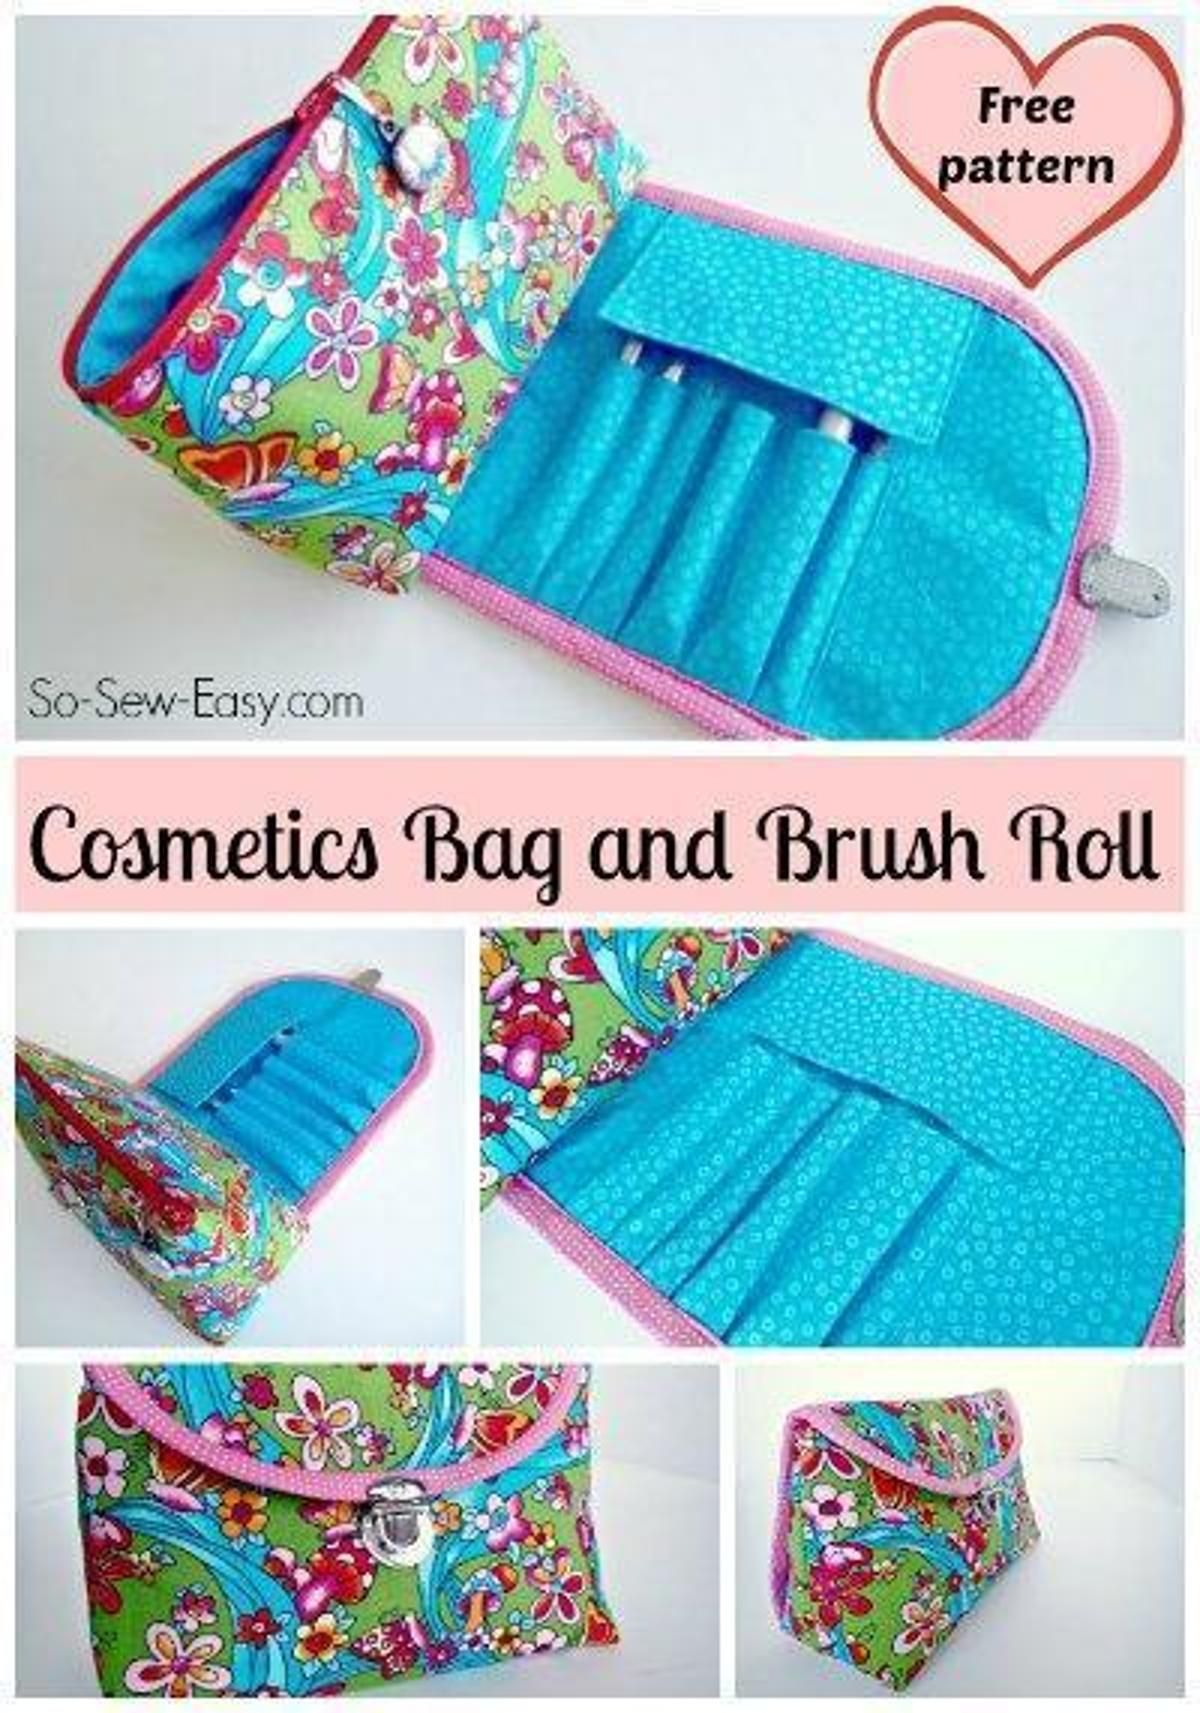 Cosmetics bag and brush roll Sewing patterns free, Bags